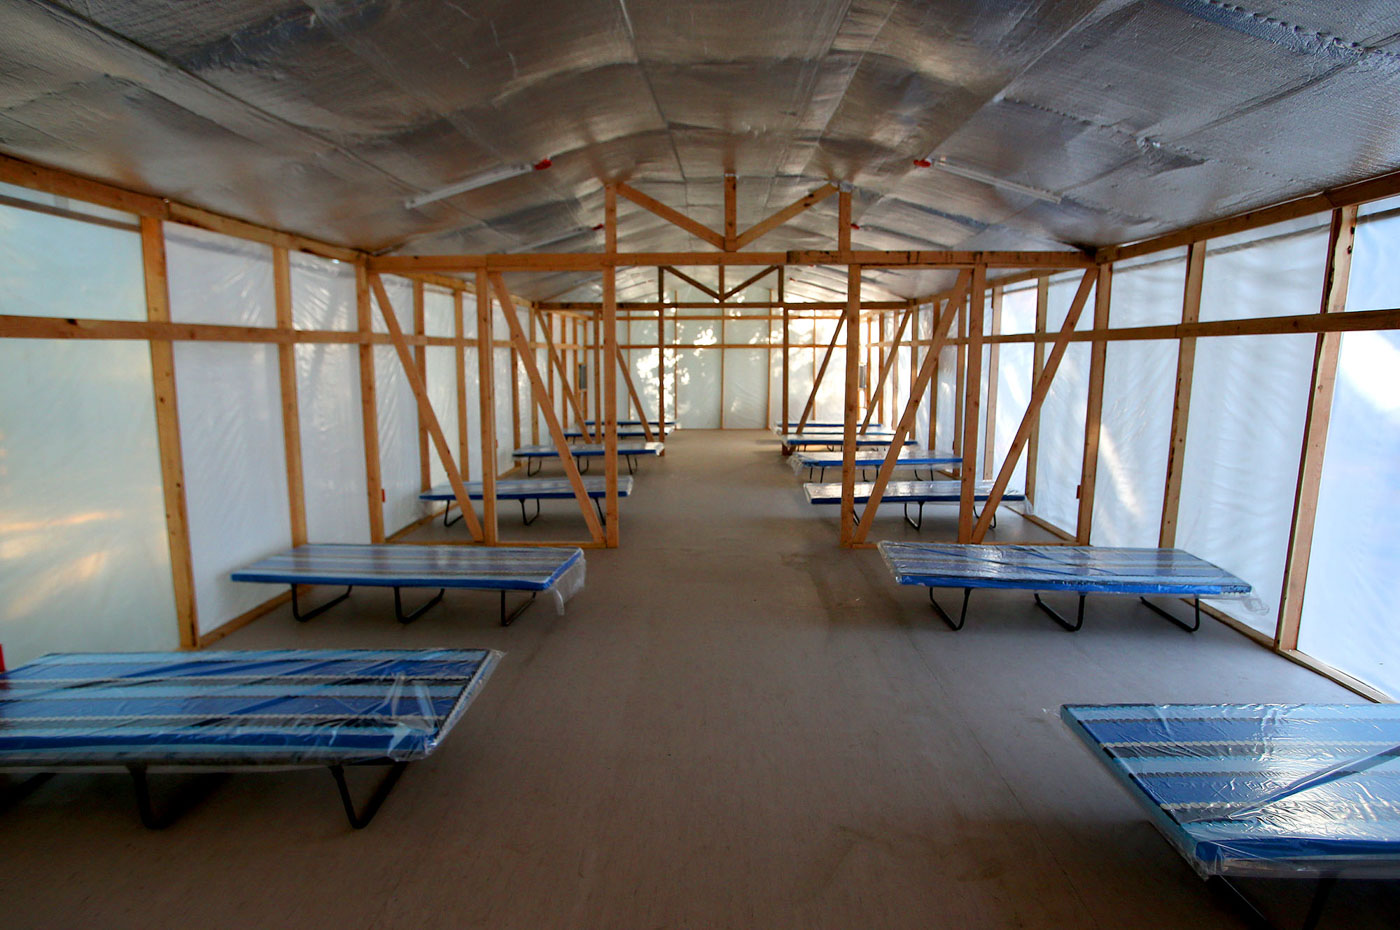 17 BEDS. The facility was designed and donated by the company WTA Architecture and Design. Photo by Inoue Jaena/Rappler